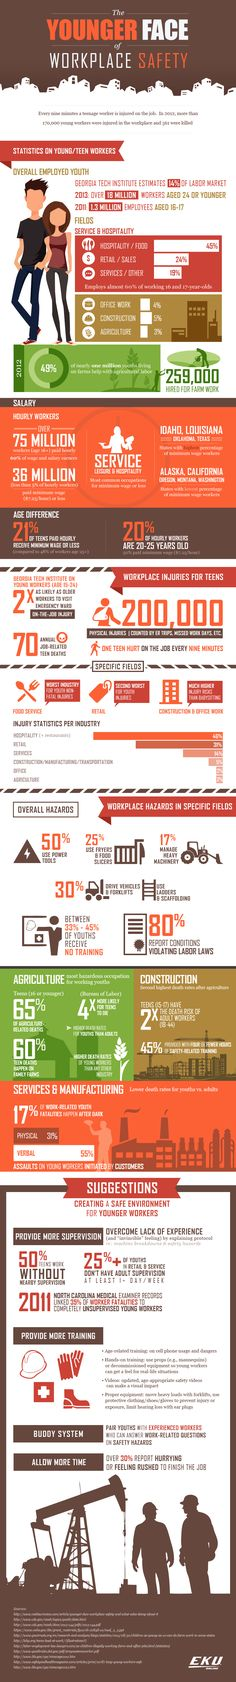 The Younger Face of Workplace Safety #Infographic #Safety #Workplace